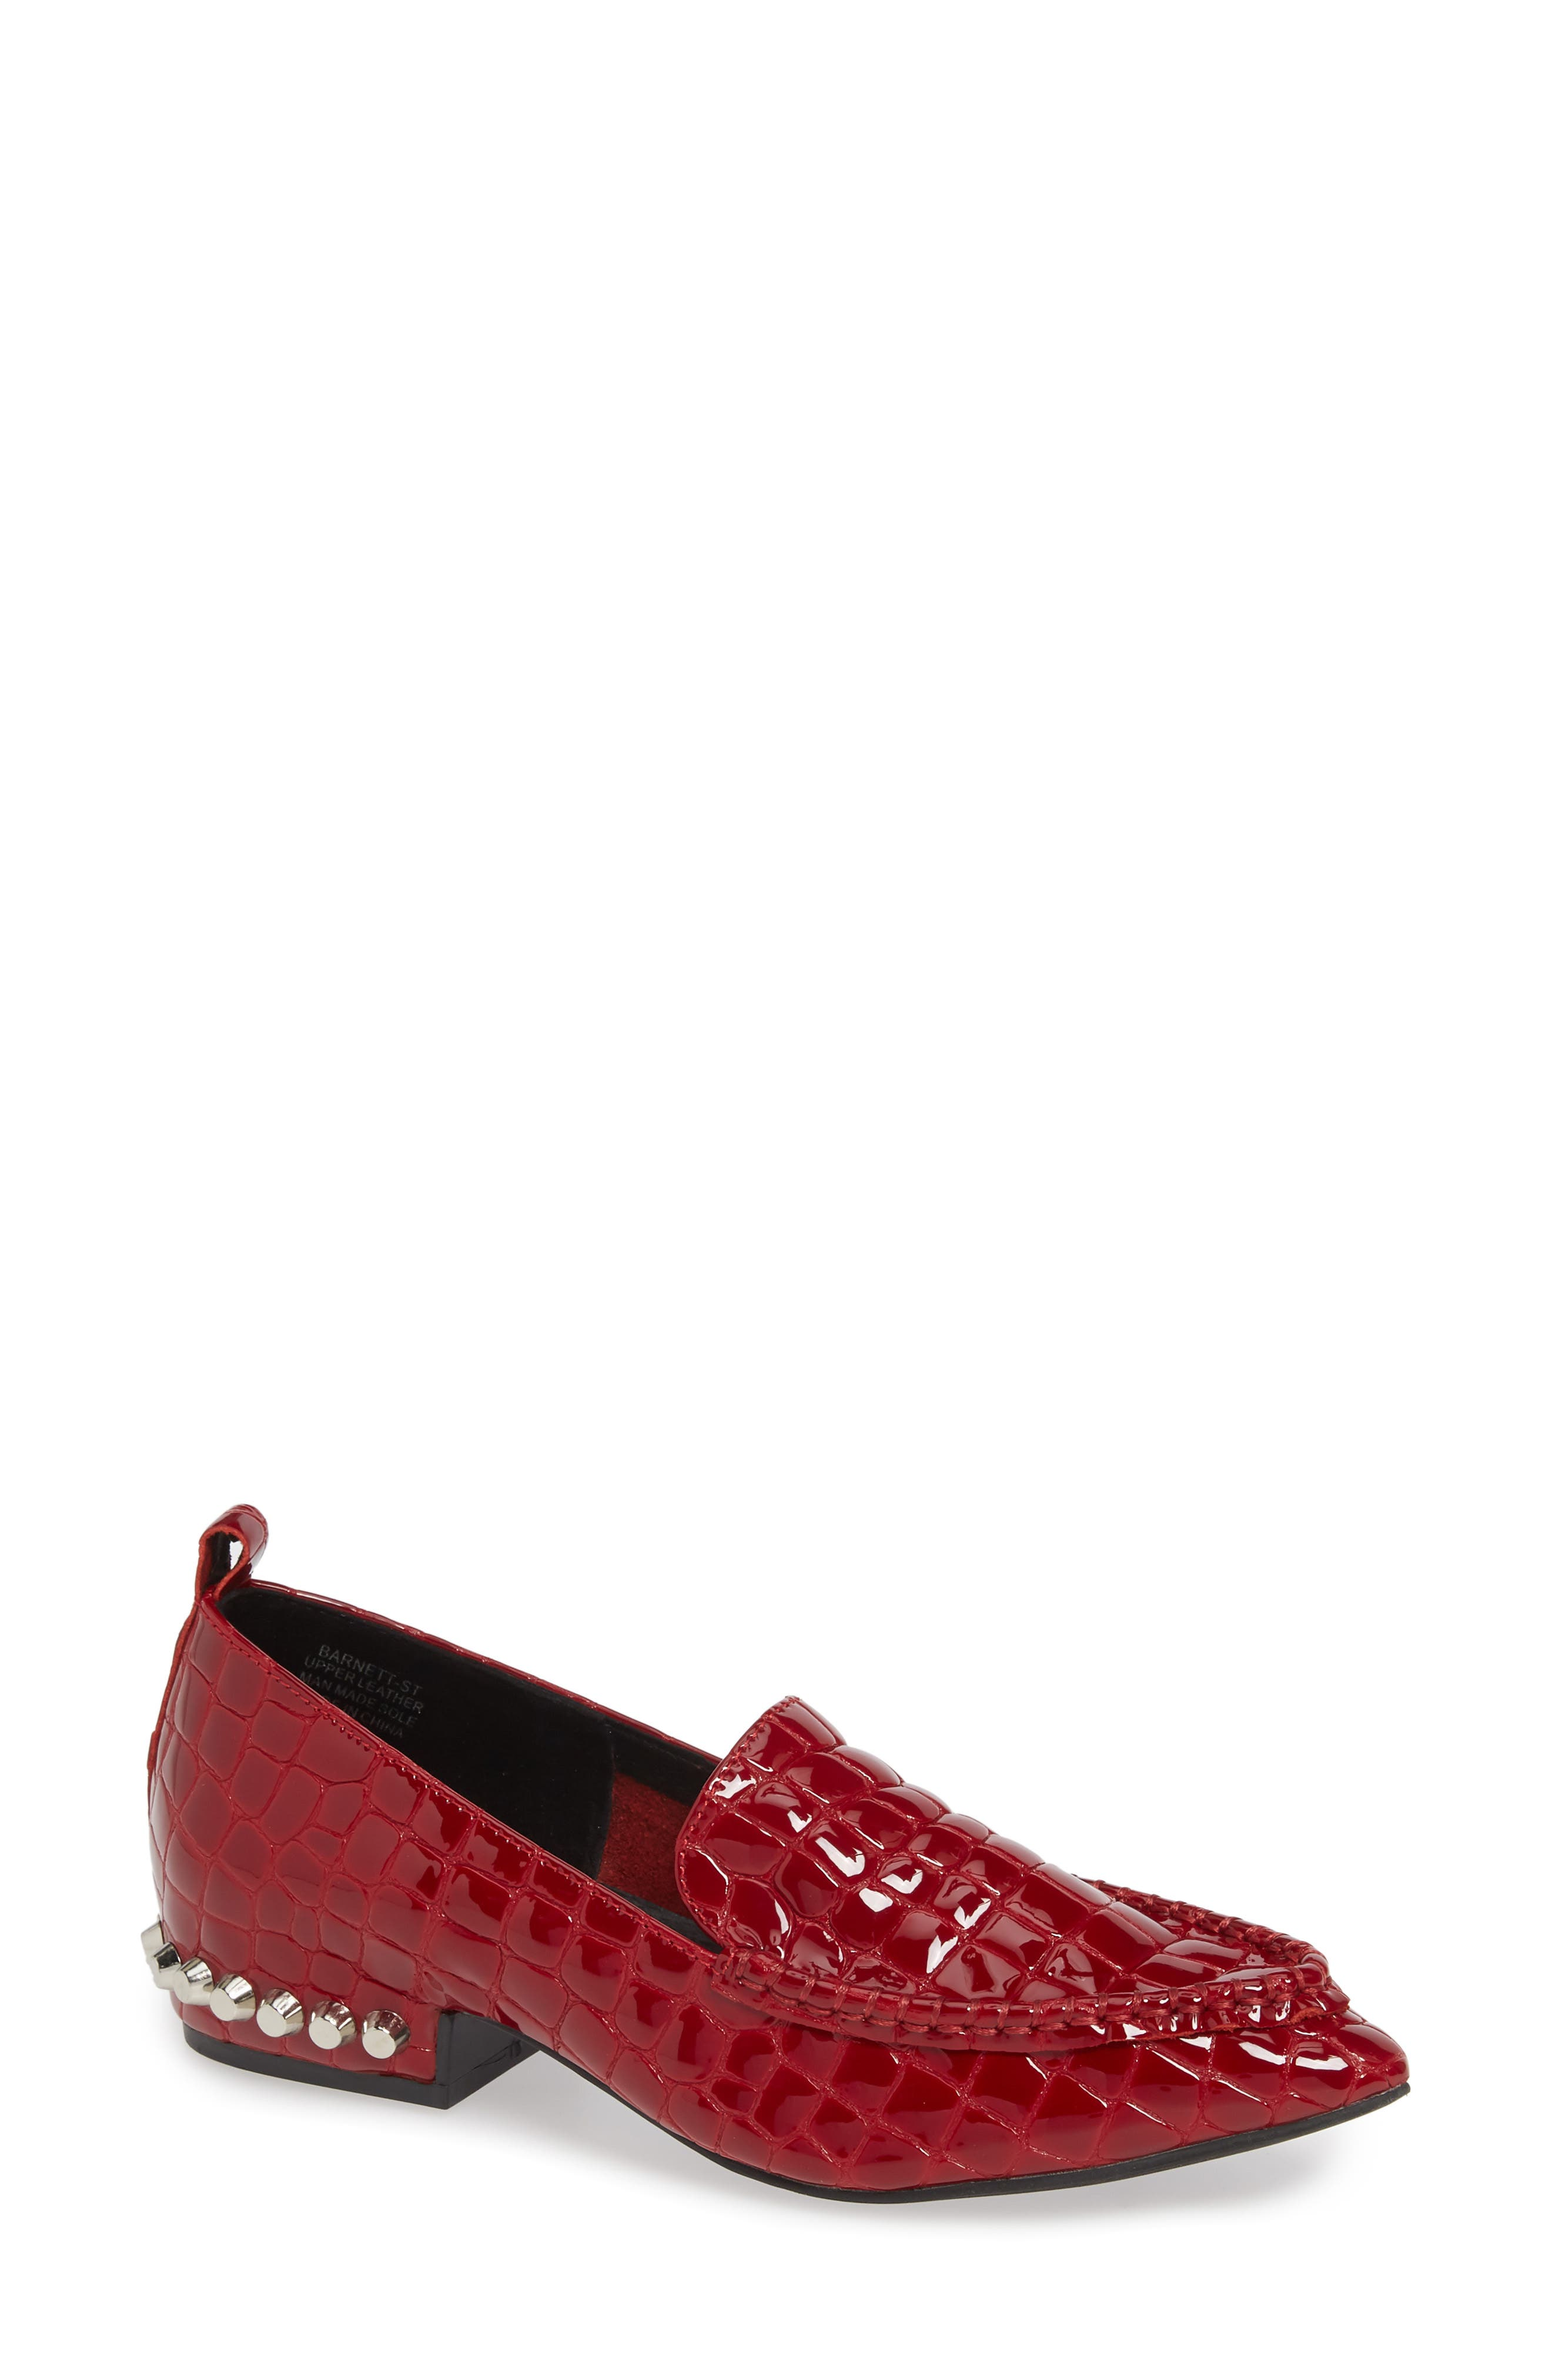 JEFFREY CAMPBELL Barnett Studded Loafer, Main, color, RED CROCODILE PRINT LEATHER